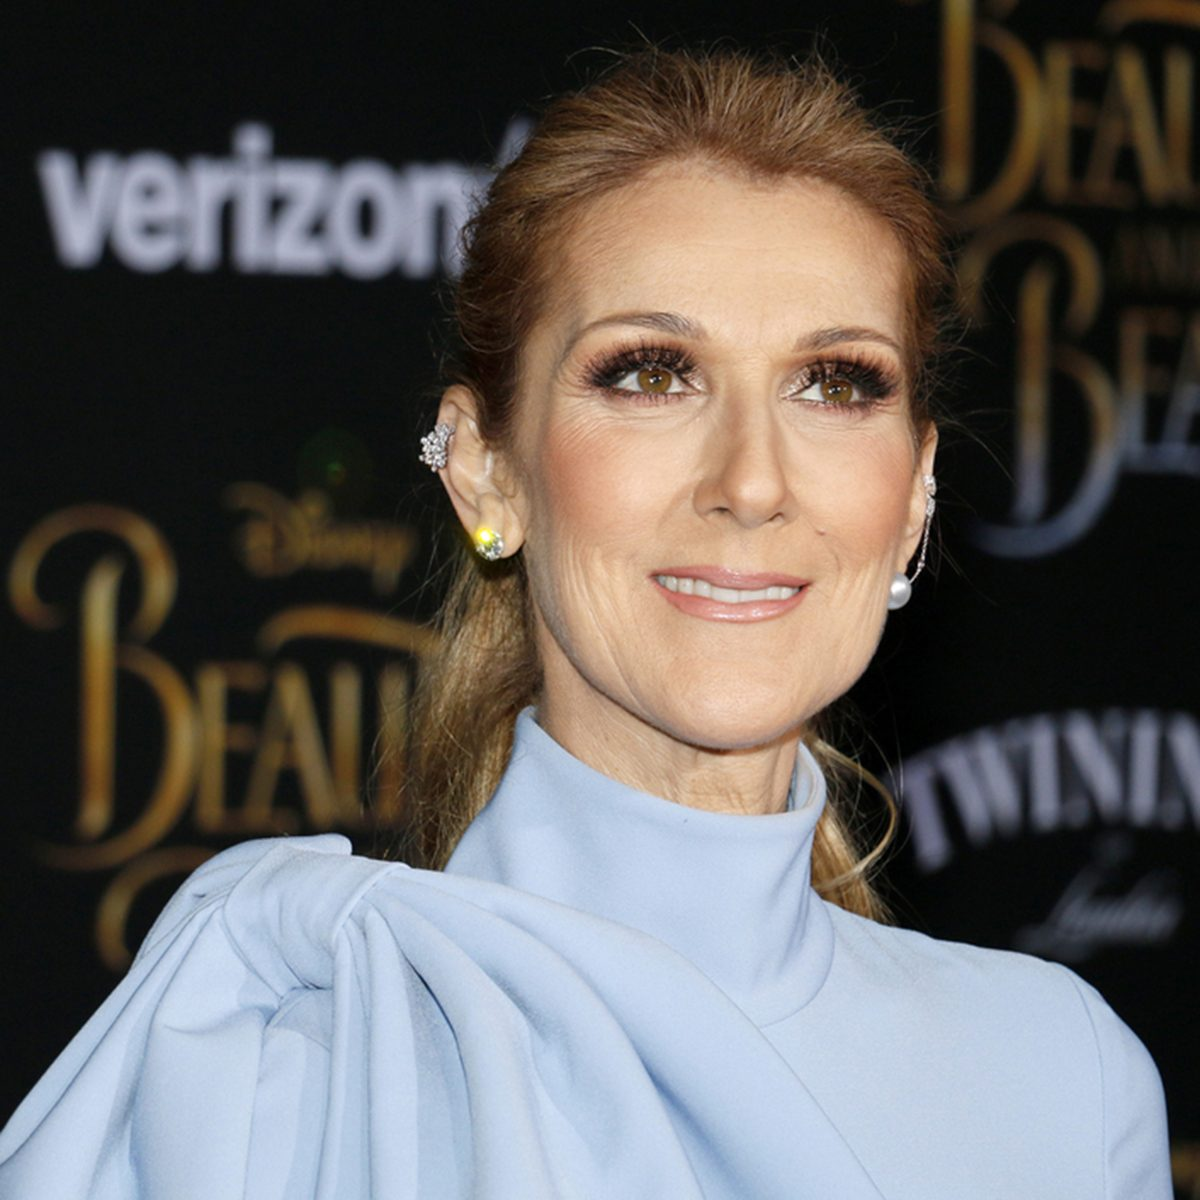 Celine Dion At The Los Angeles Premiere Of Beauty And Beast Held